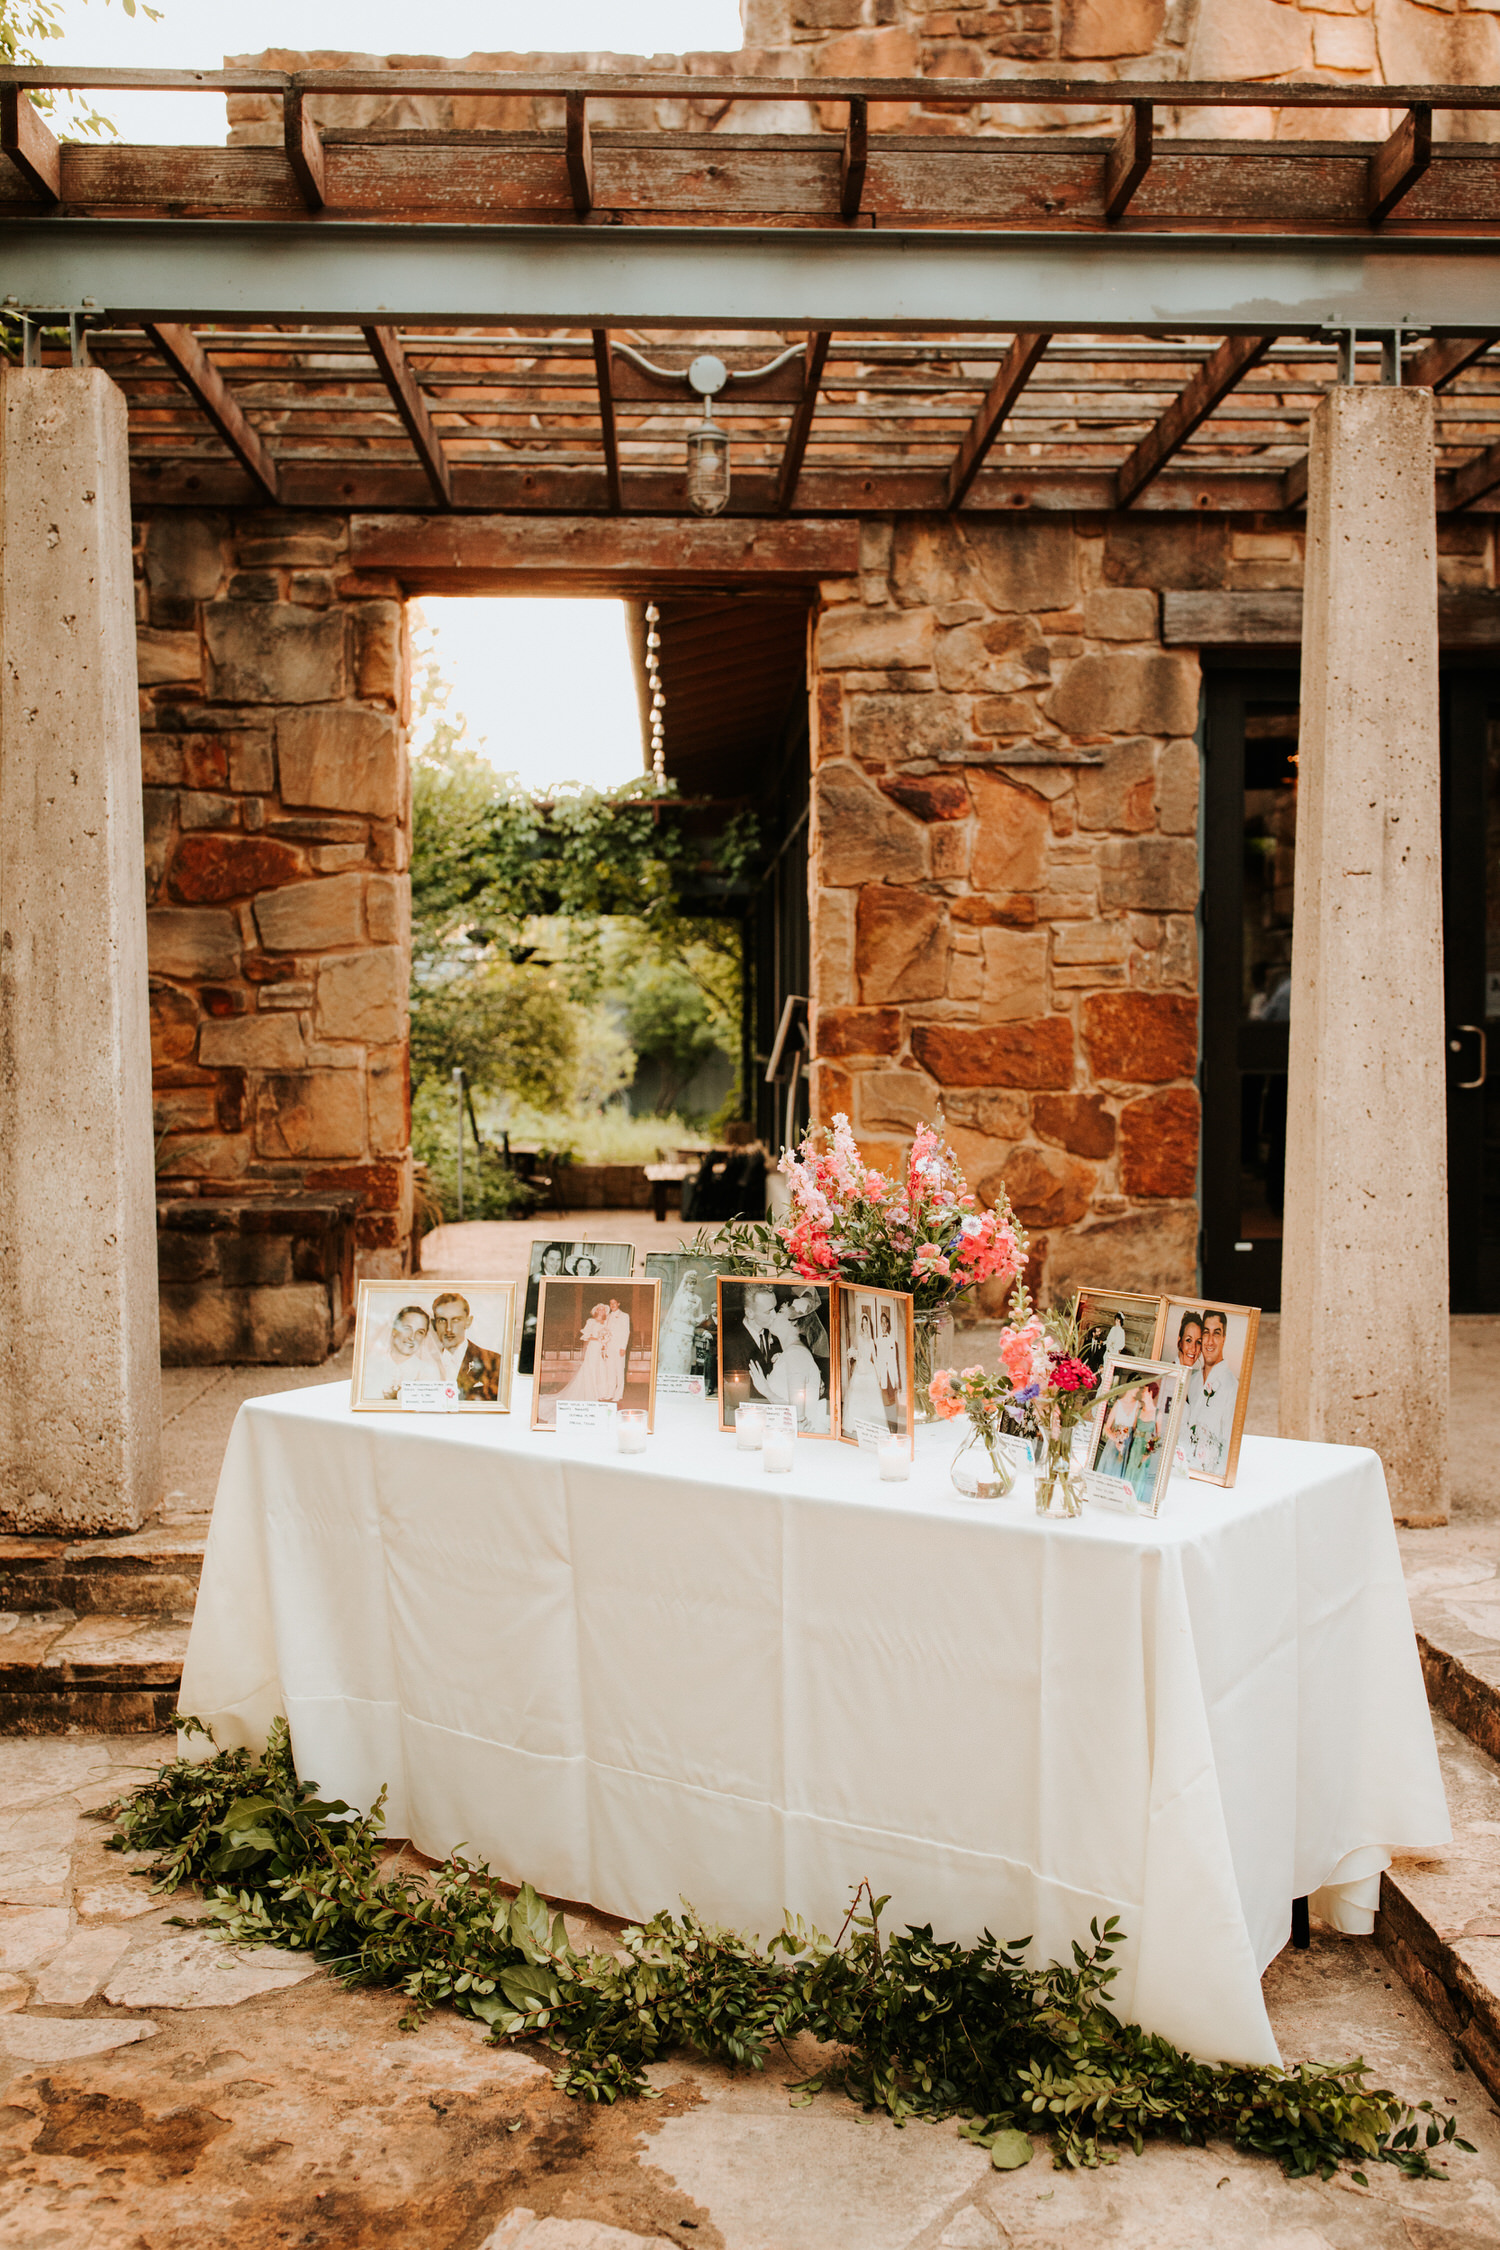 _Lady Bird Johnson Wildflower Center Wedding - Diana Ascarrunz Photography-1141.jpg